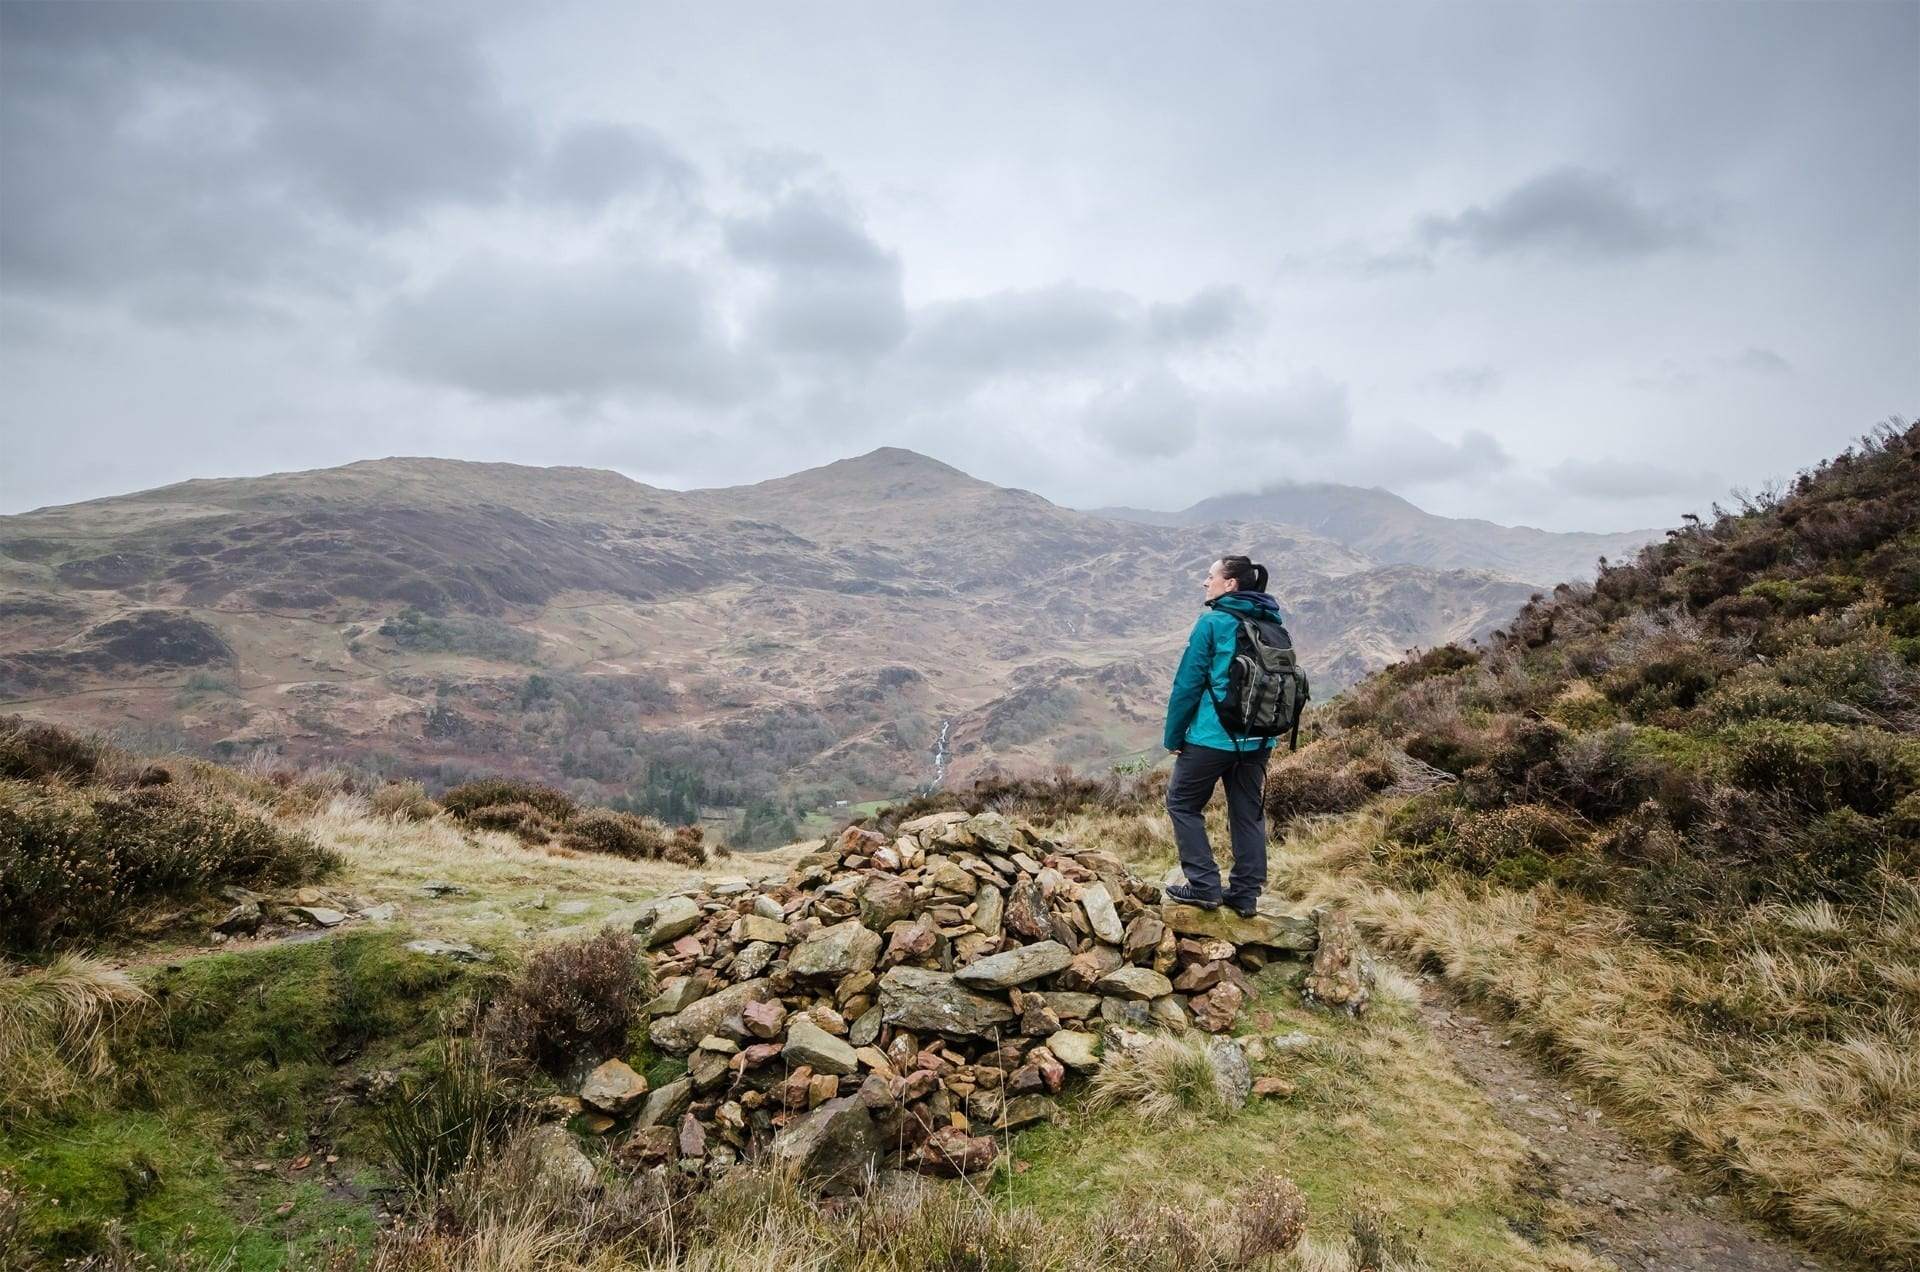 Female hiker with waterproof coat and backpack enjoying the view from the top of a hill in the Snowdonia National Park, Wales, UK